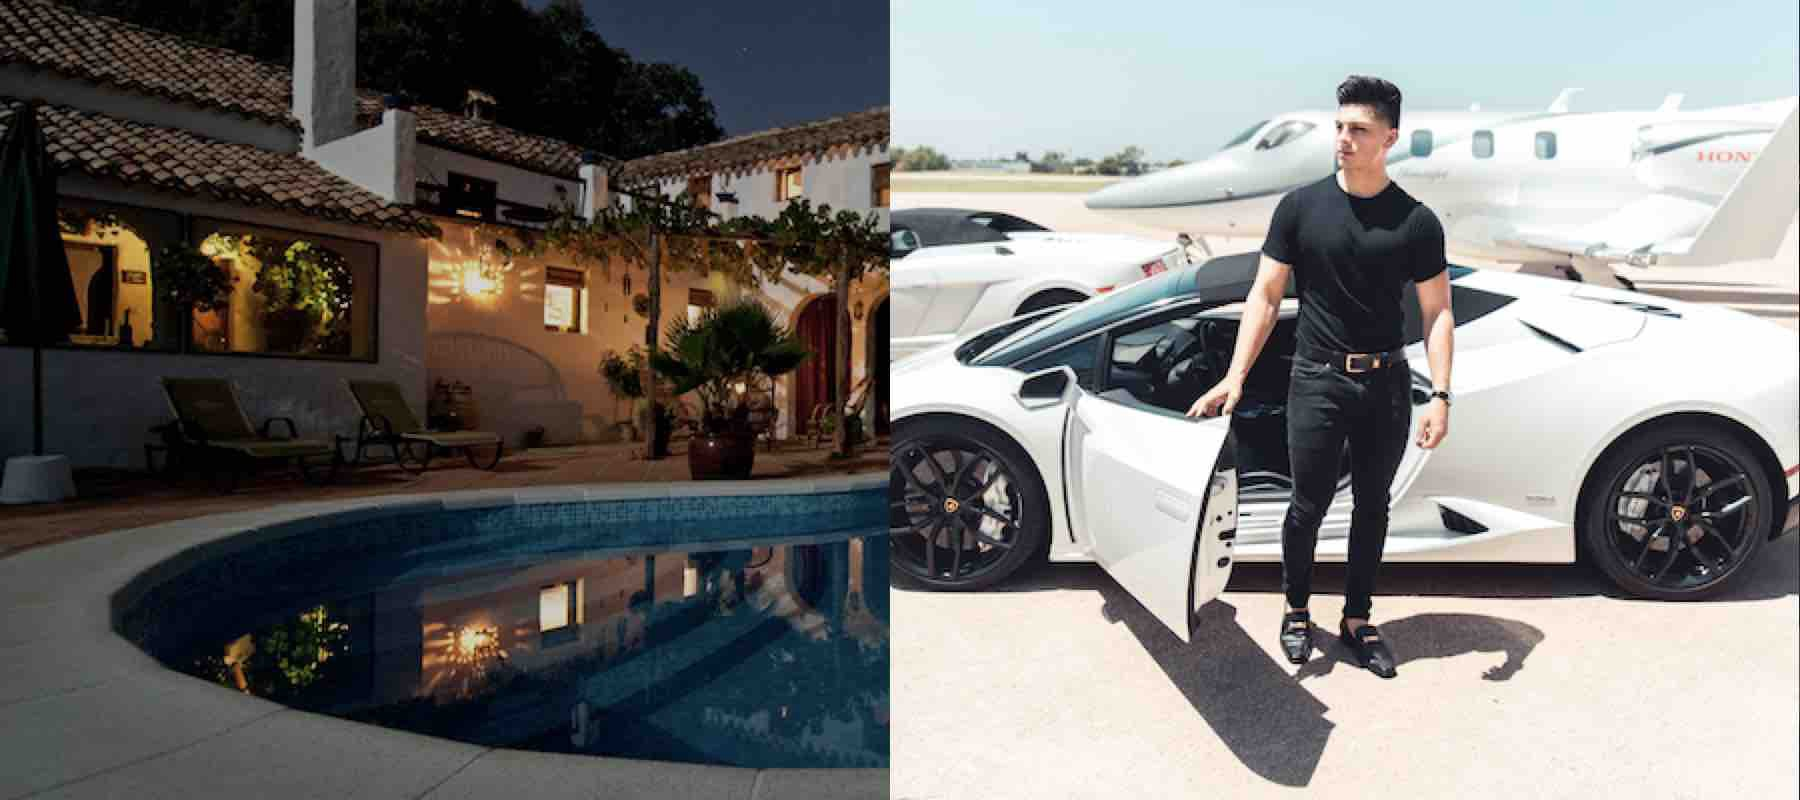 Fancy house with pool, wealthy young man car and plane